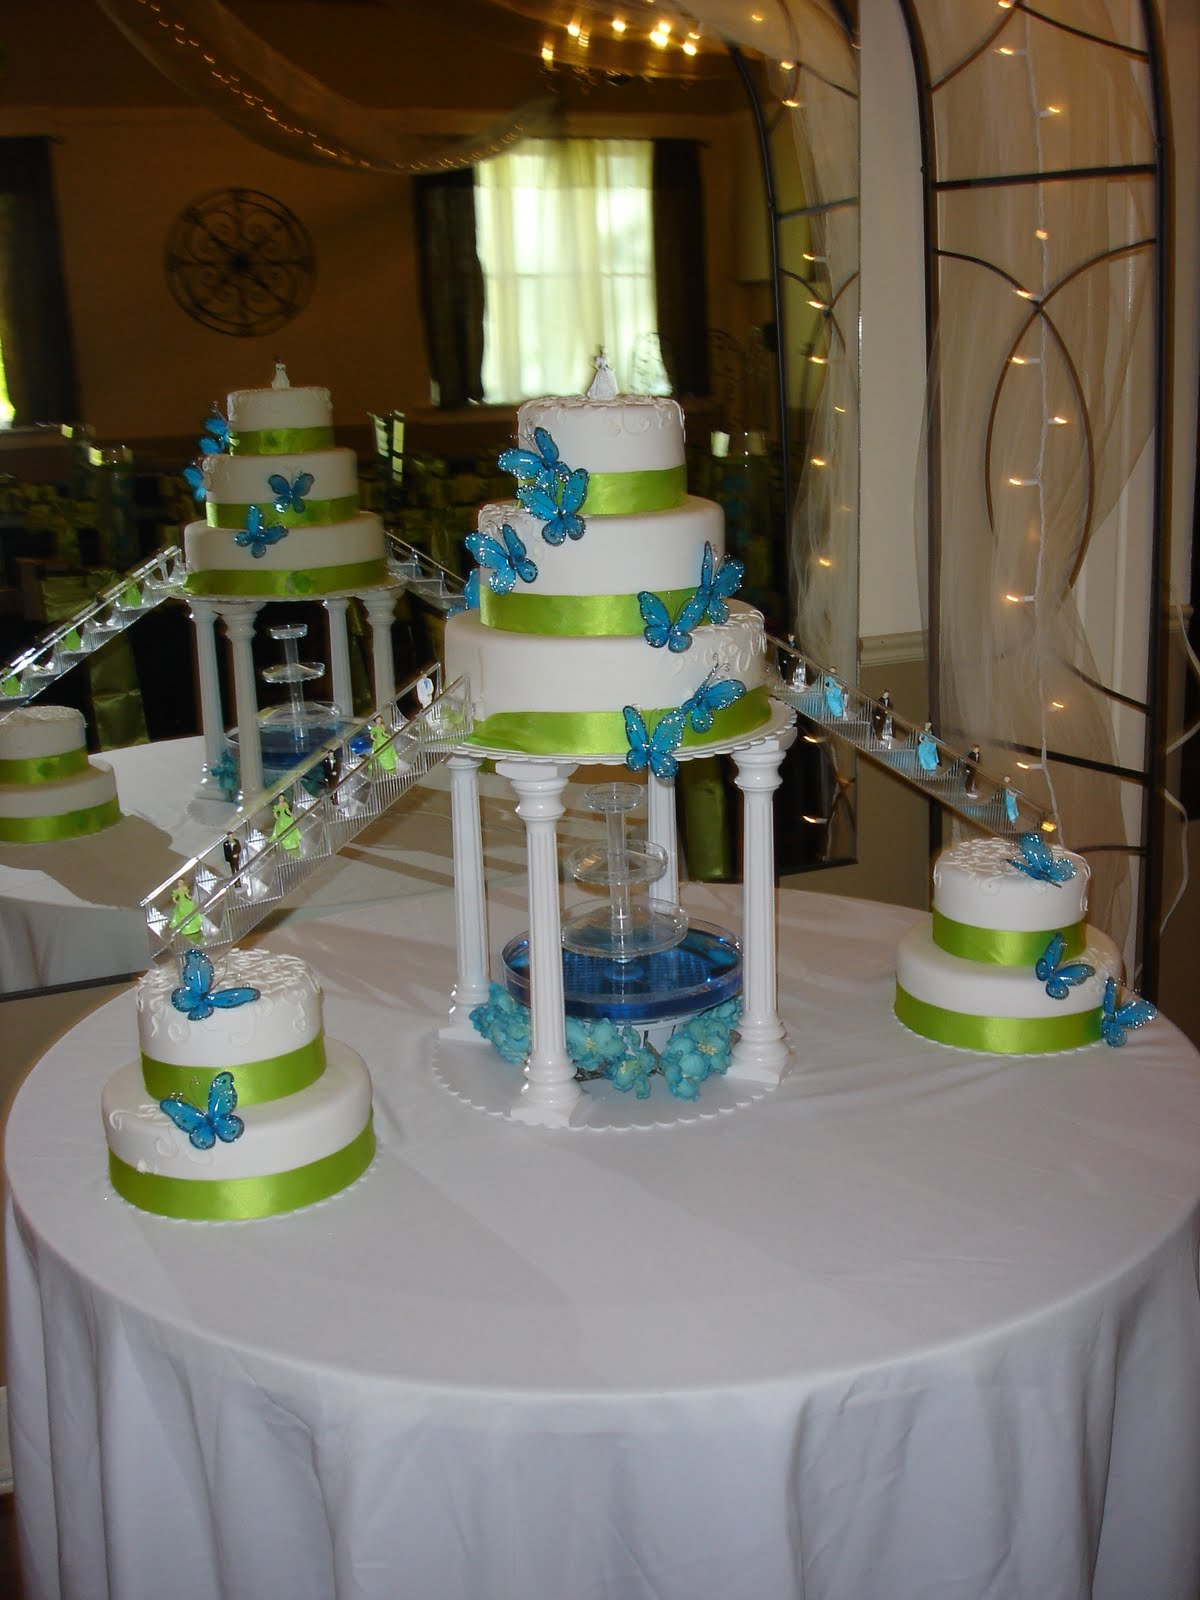 Quinceanera Cakes   Decoration Ideas Little Birthday Cakes